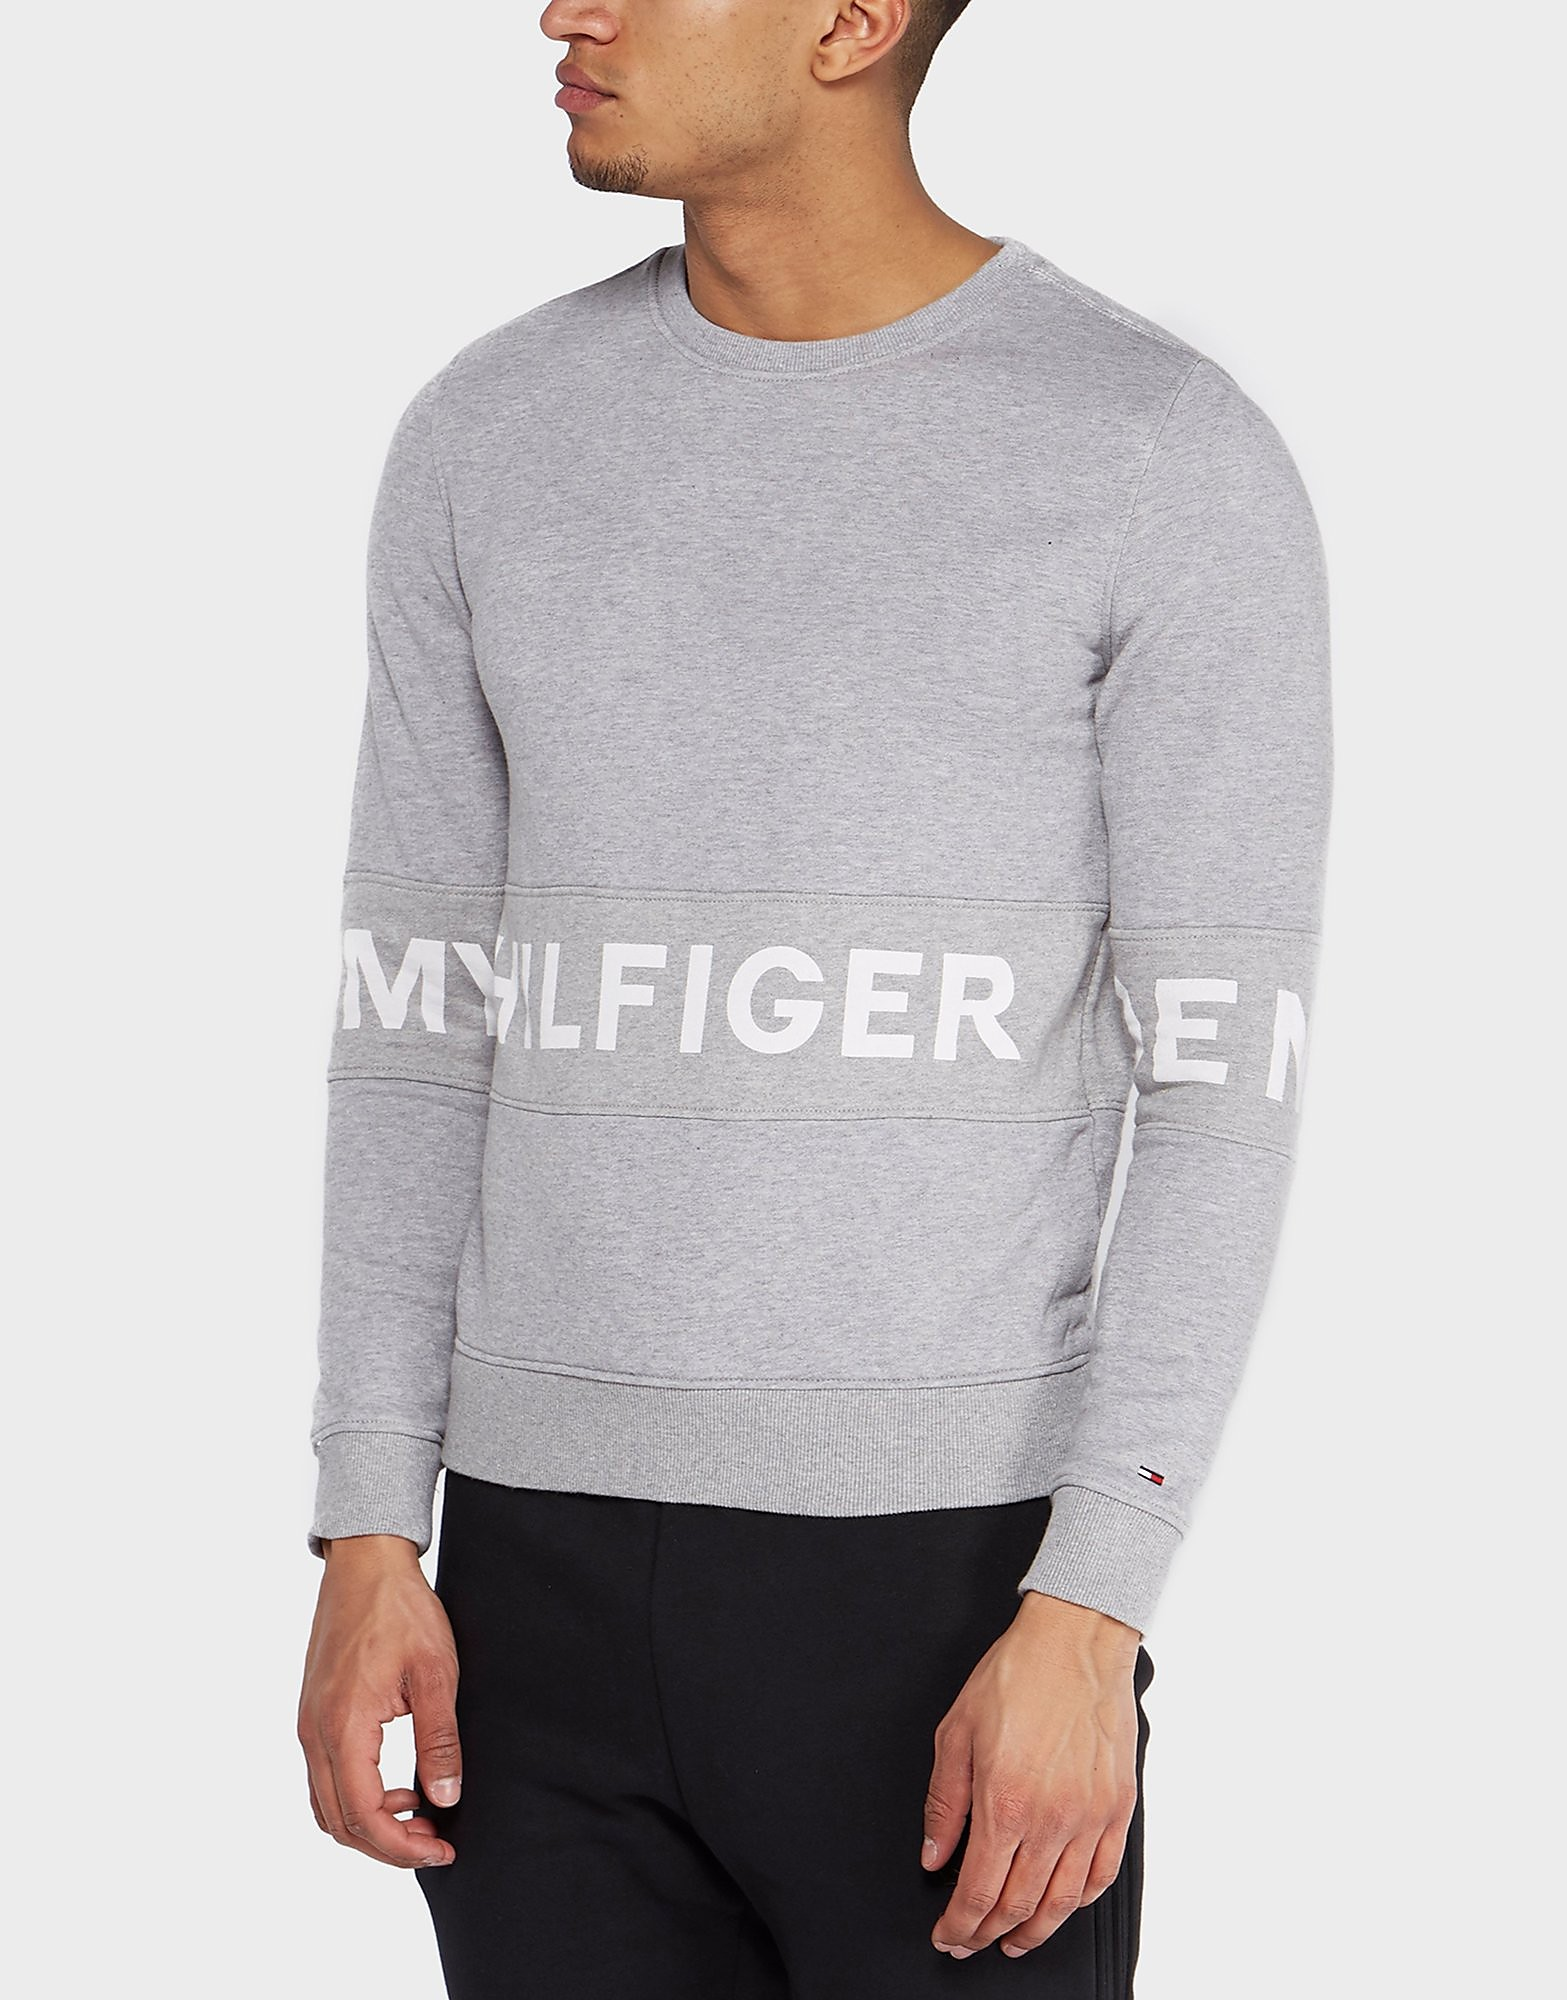 Tommy Hilfiger Branded Sweatshirt